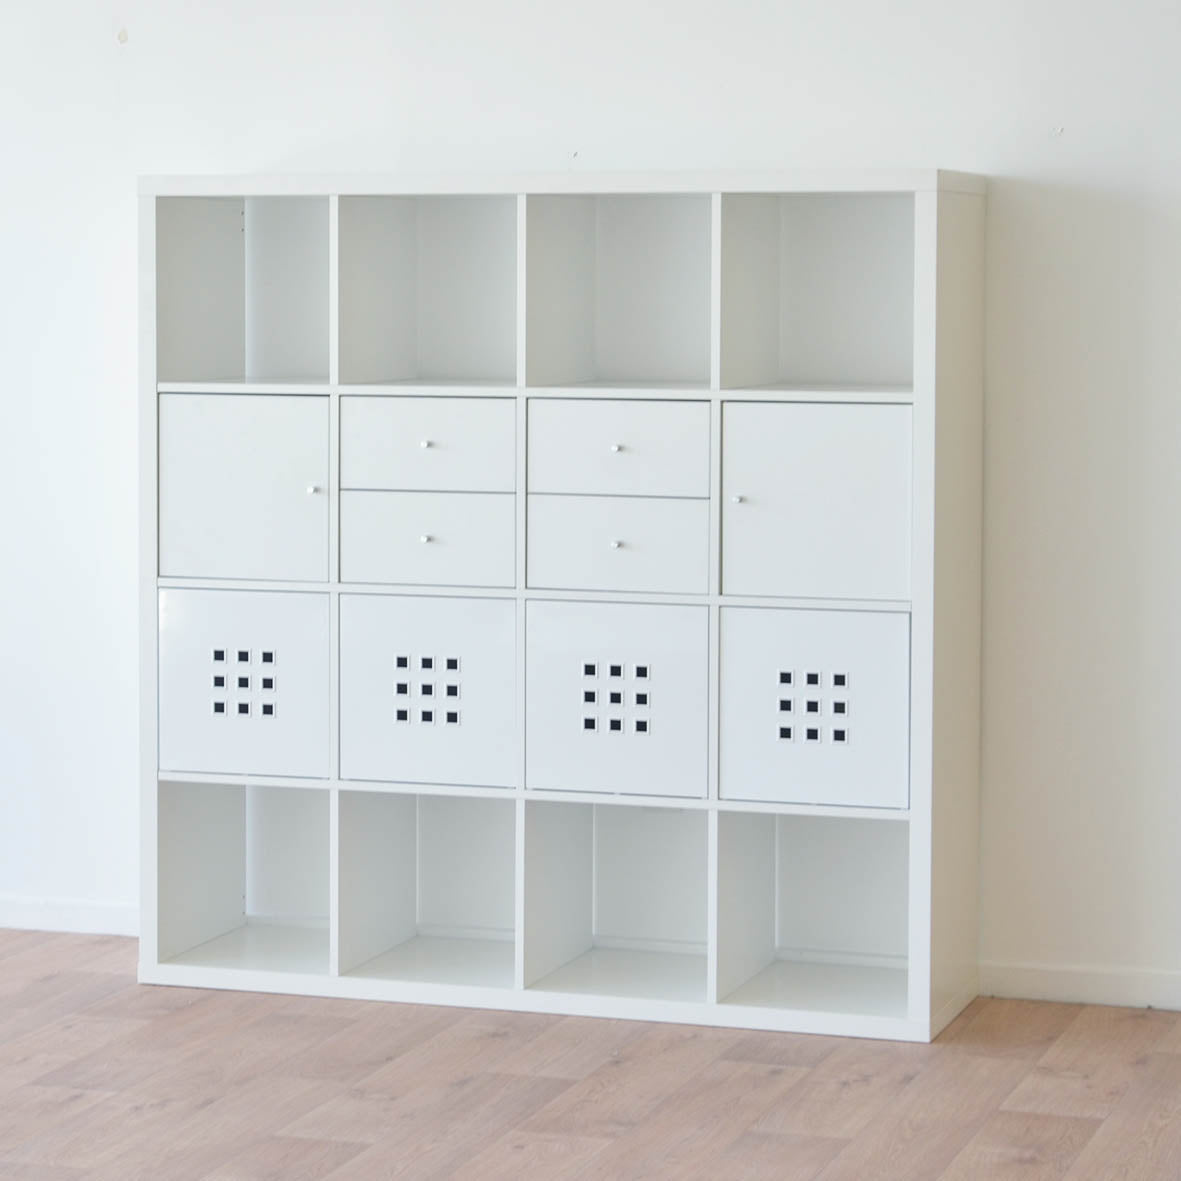 IKEA Kallax 4x4 Shelving unit, 147x147cm, White